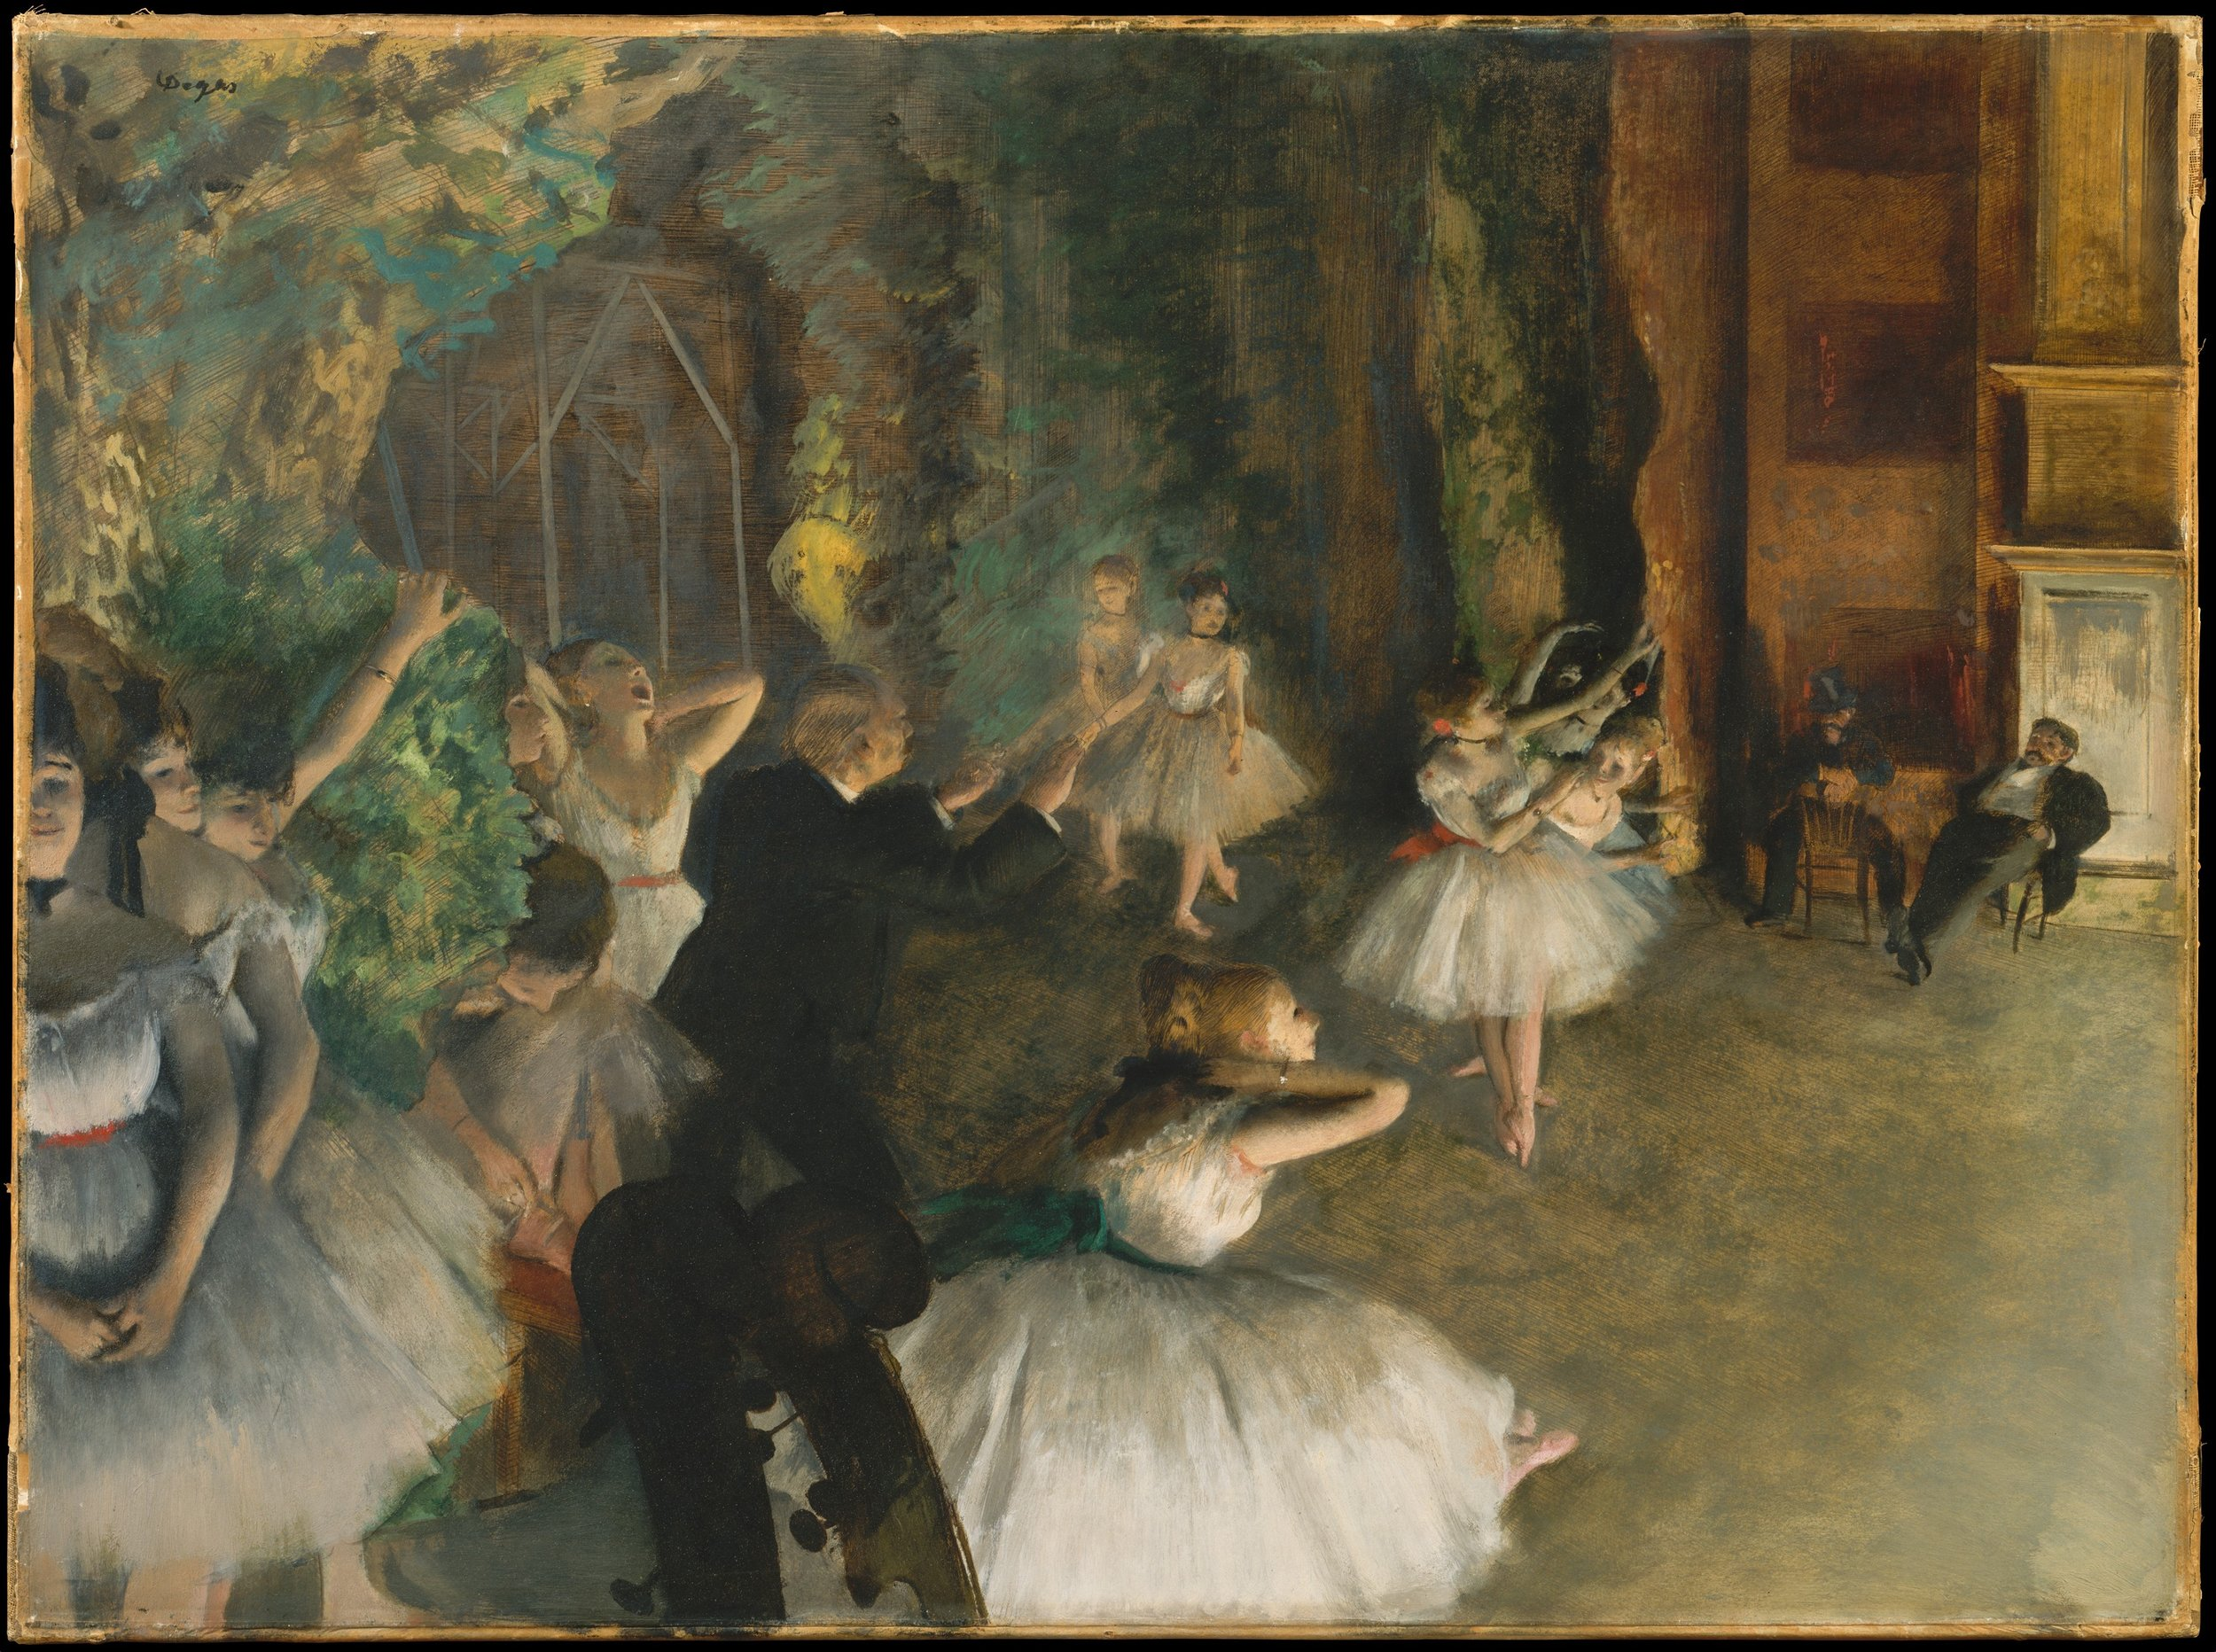 Edgar Degas, The Rehearsal of the Ballet Onstage, 1874